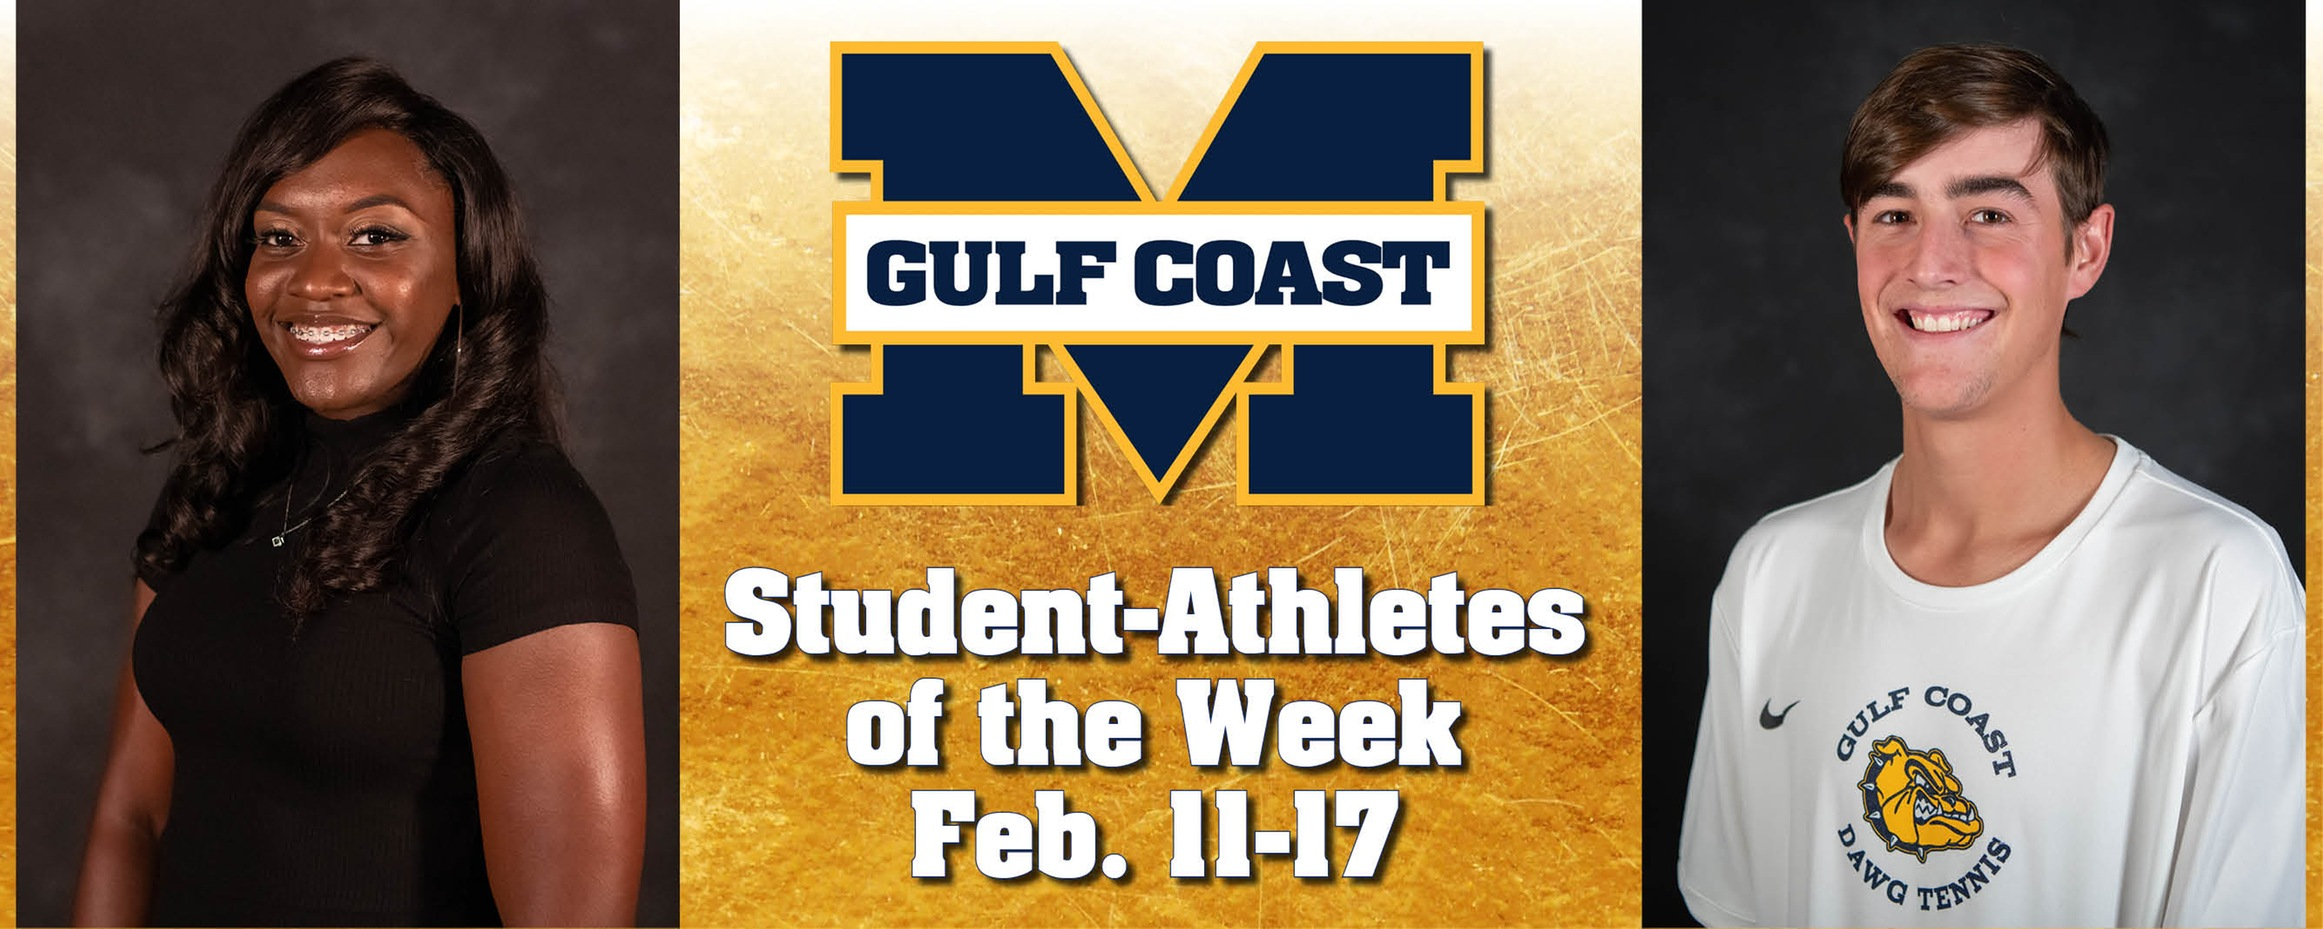 Sutton, Vos named MGCCC Student-Athletes of the Week